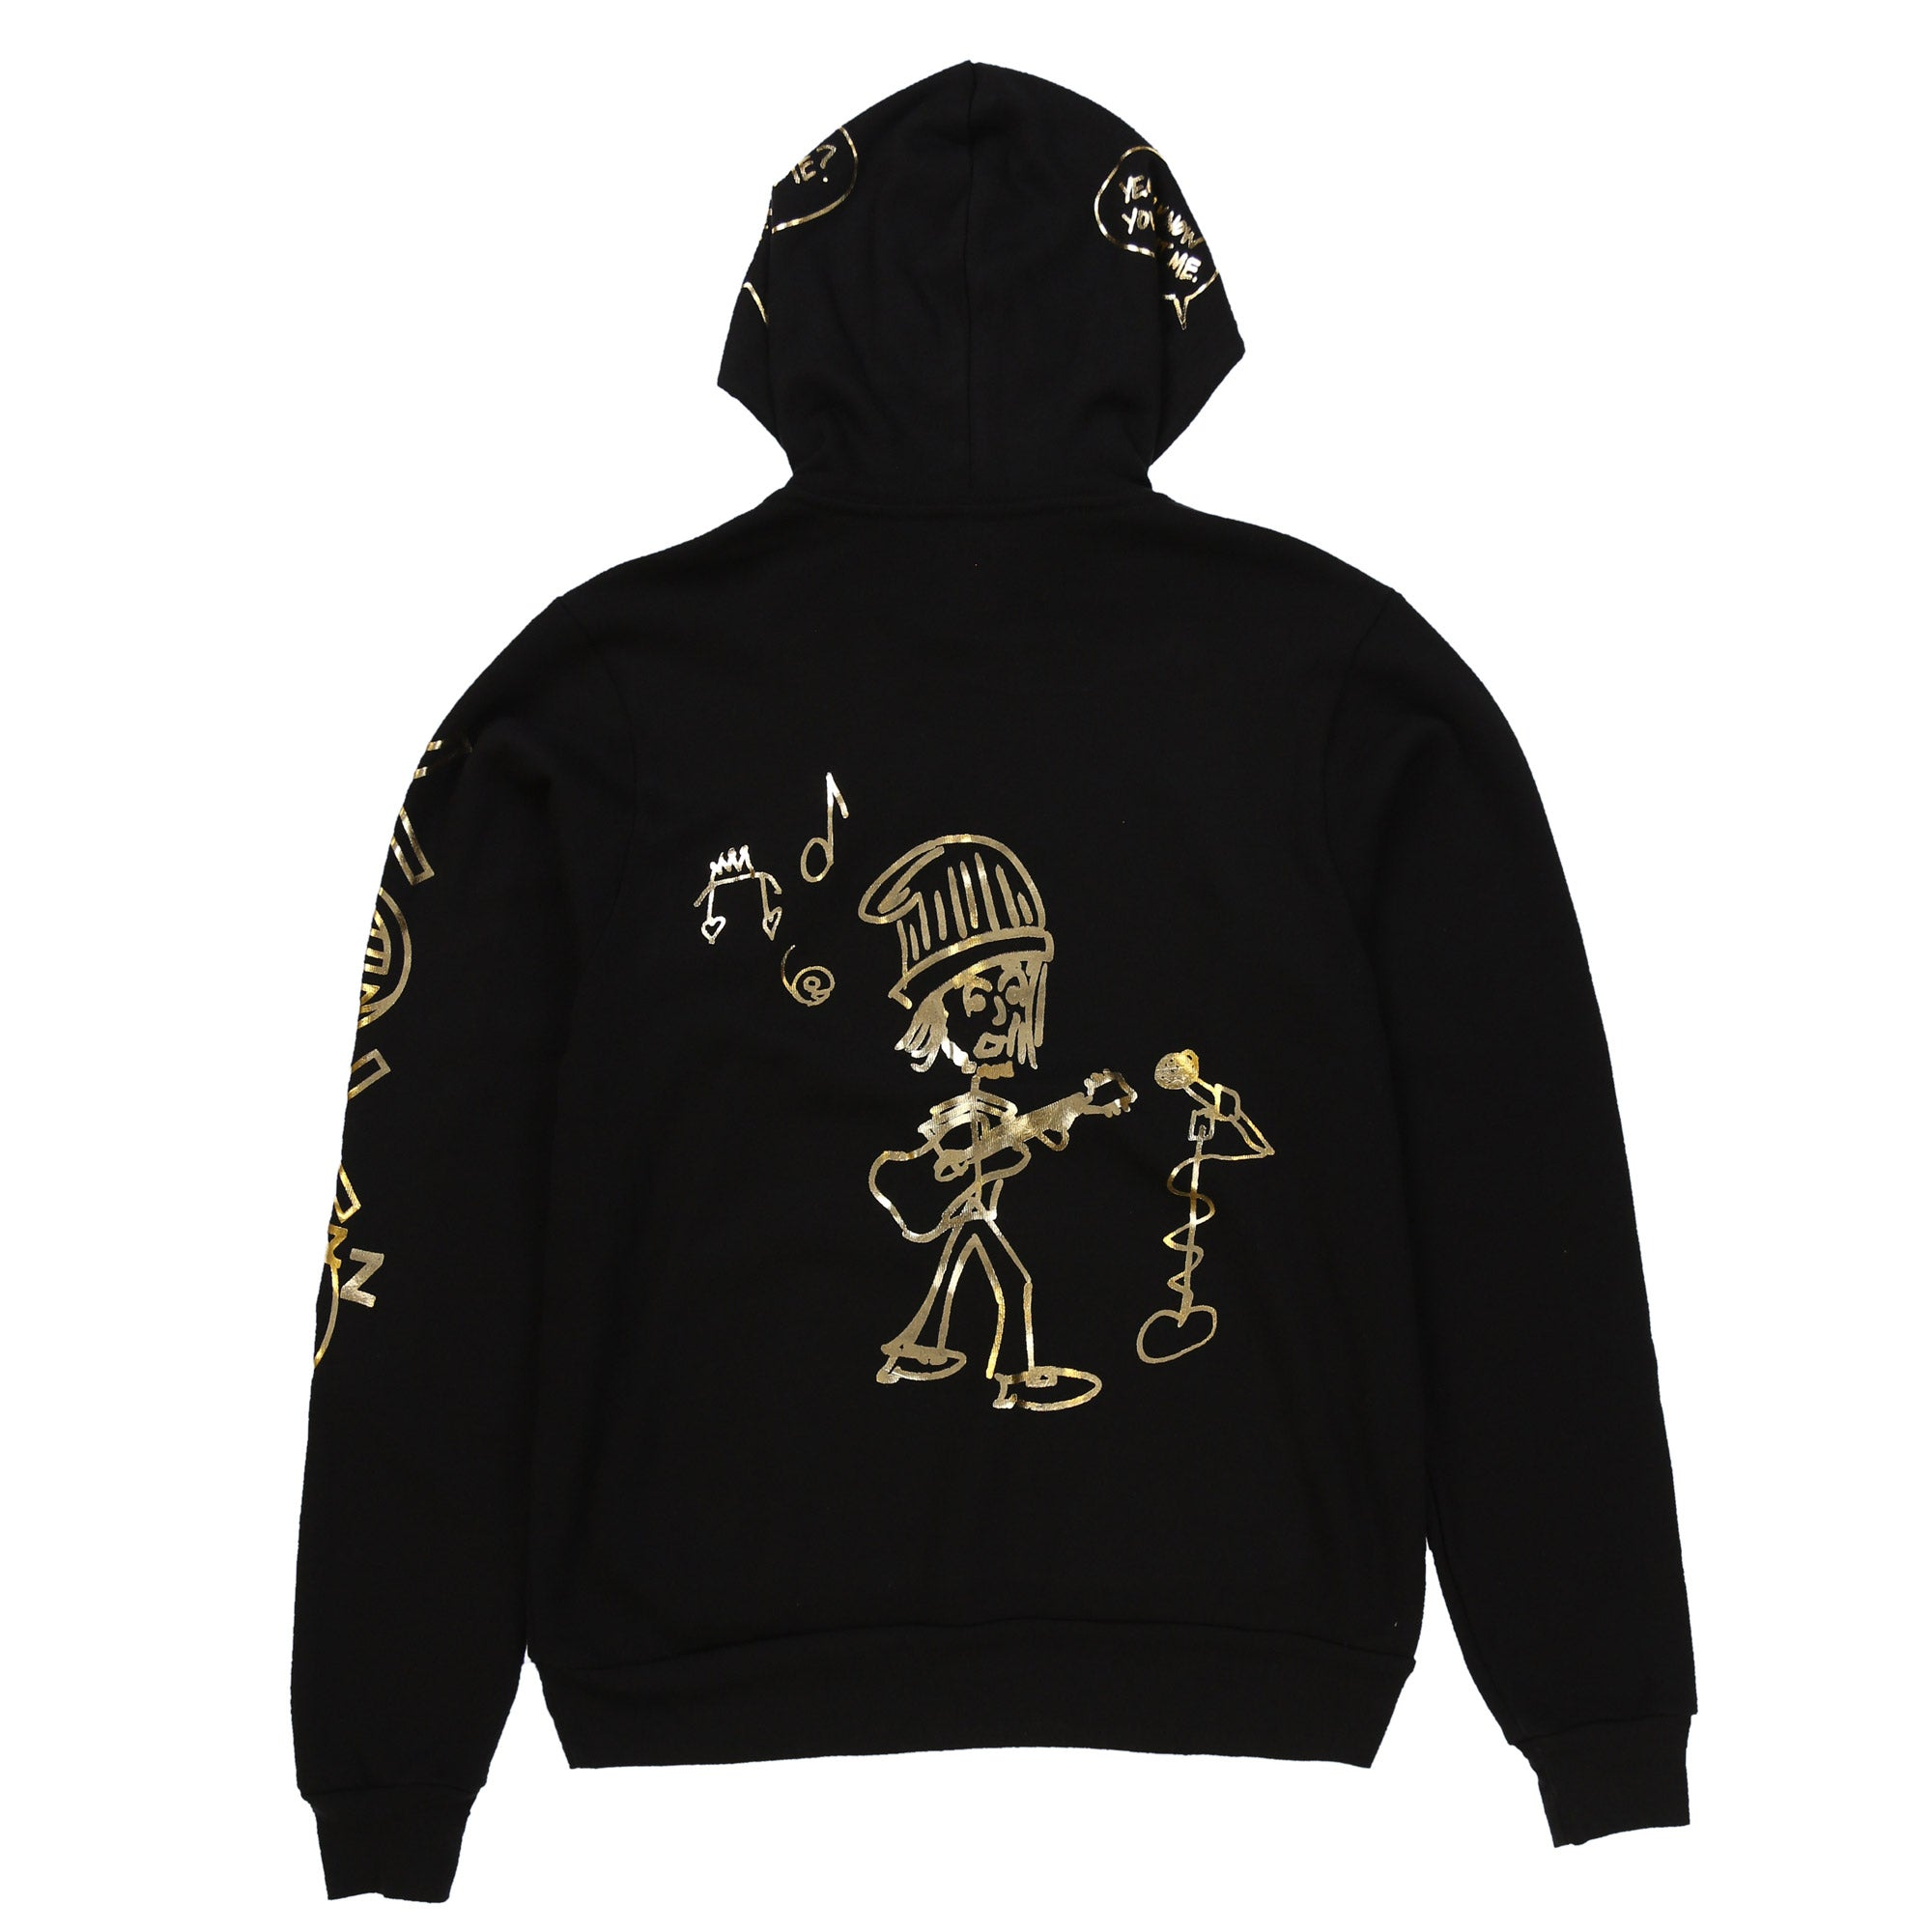 East of Eli Black Sketch Hoodie